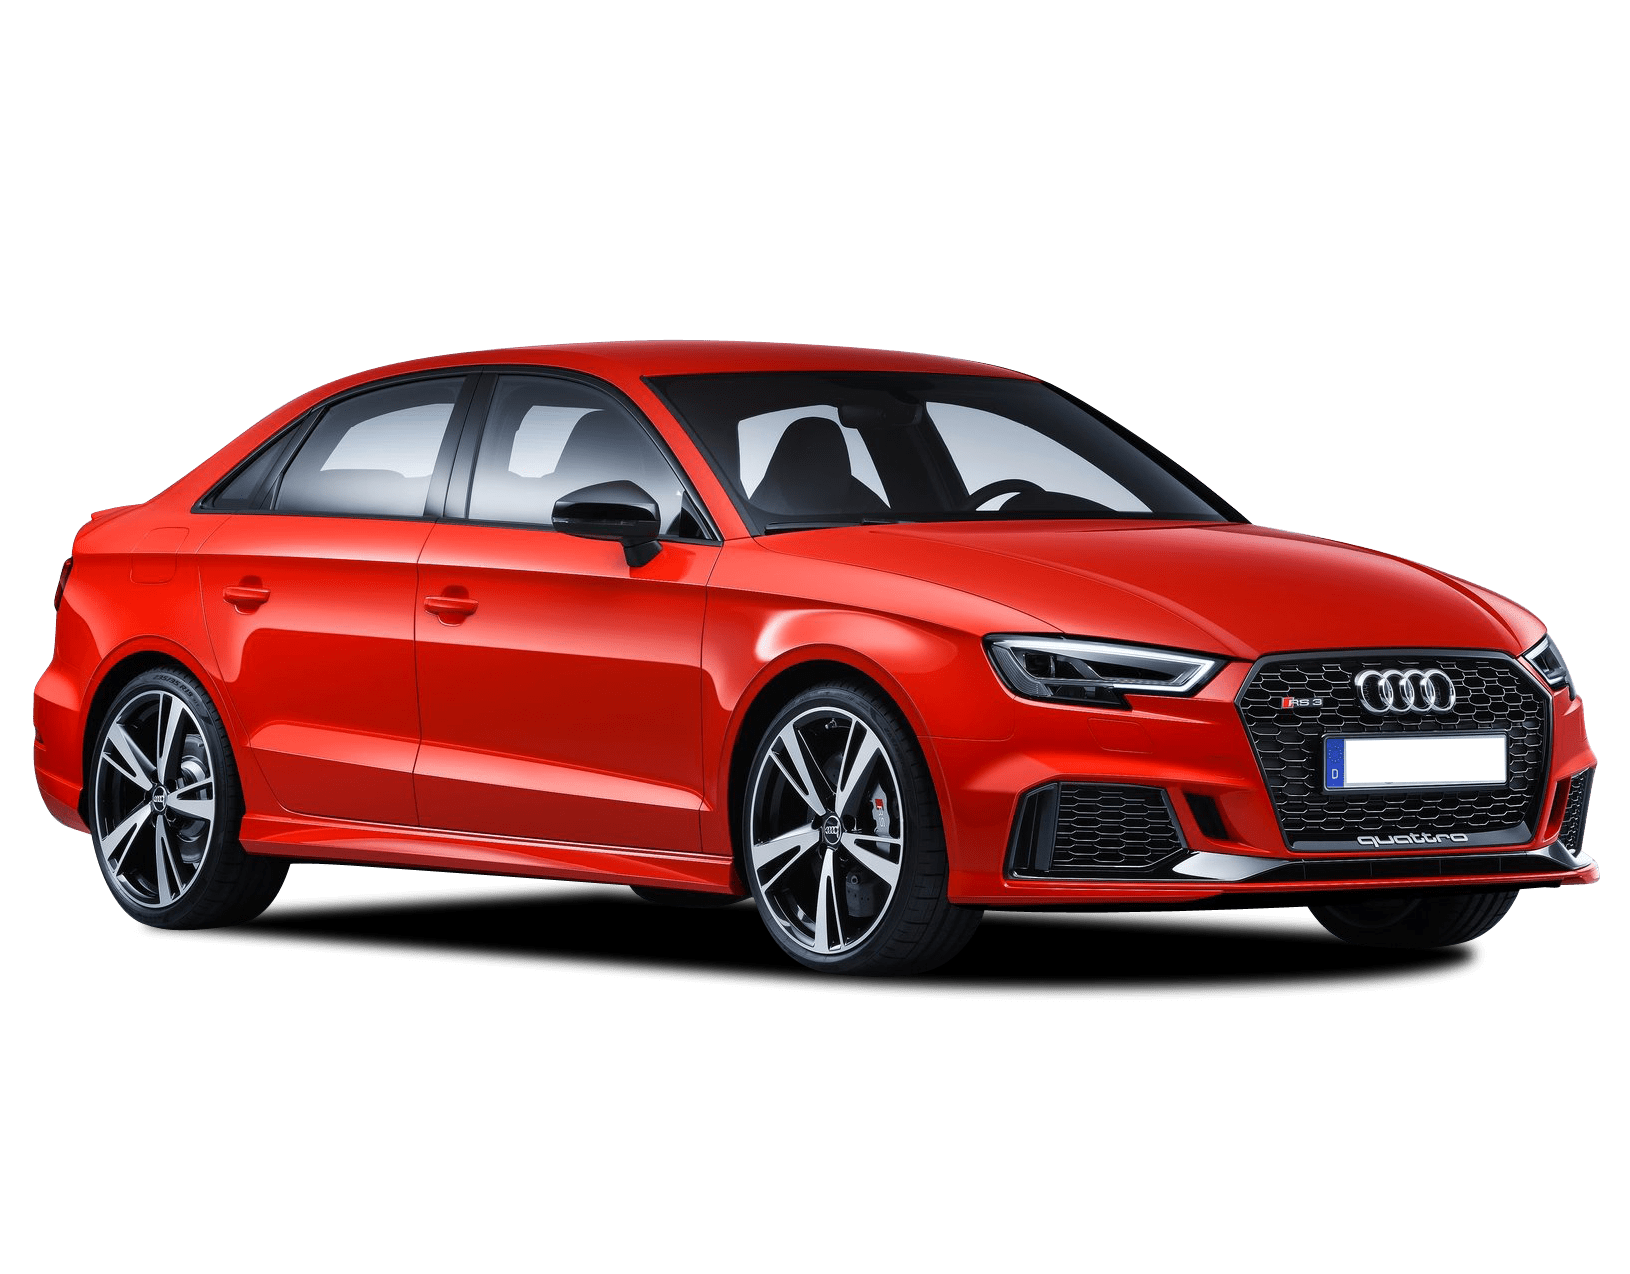 Audi Rs3 Review Price For Sale Colours Specs Interior Carsguide